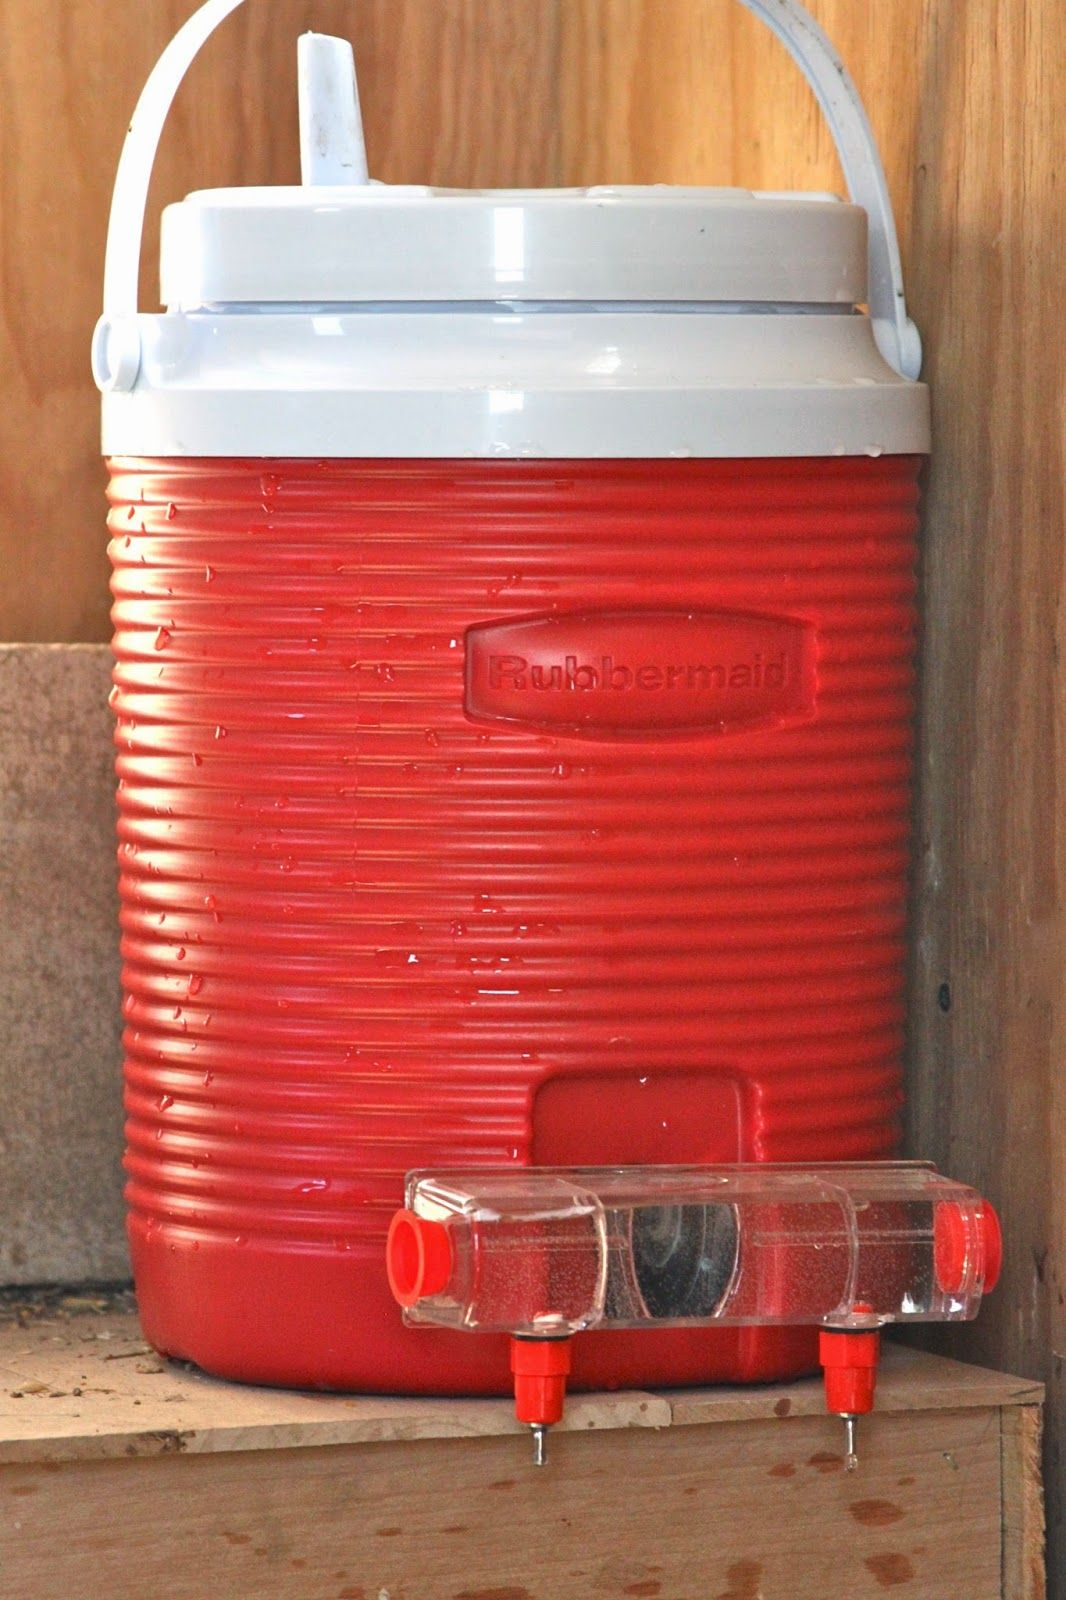 I so want a Brite Tap Chicken Waterer. Perhaps the